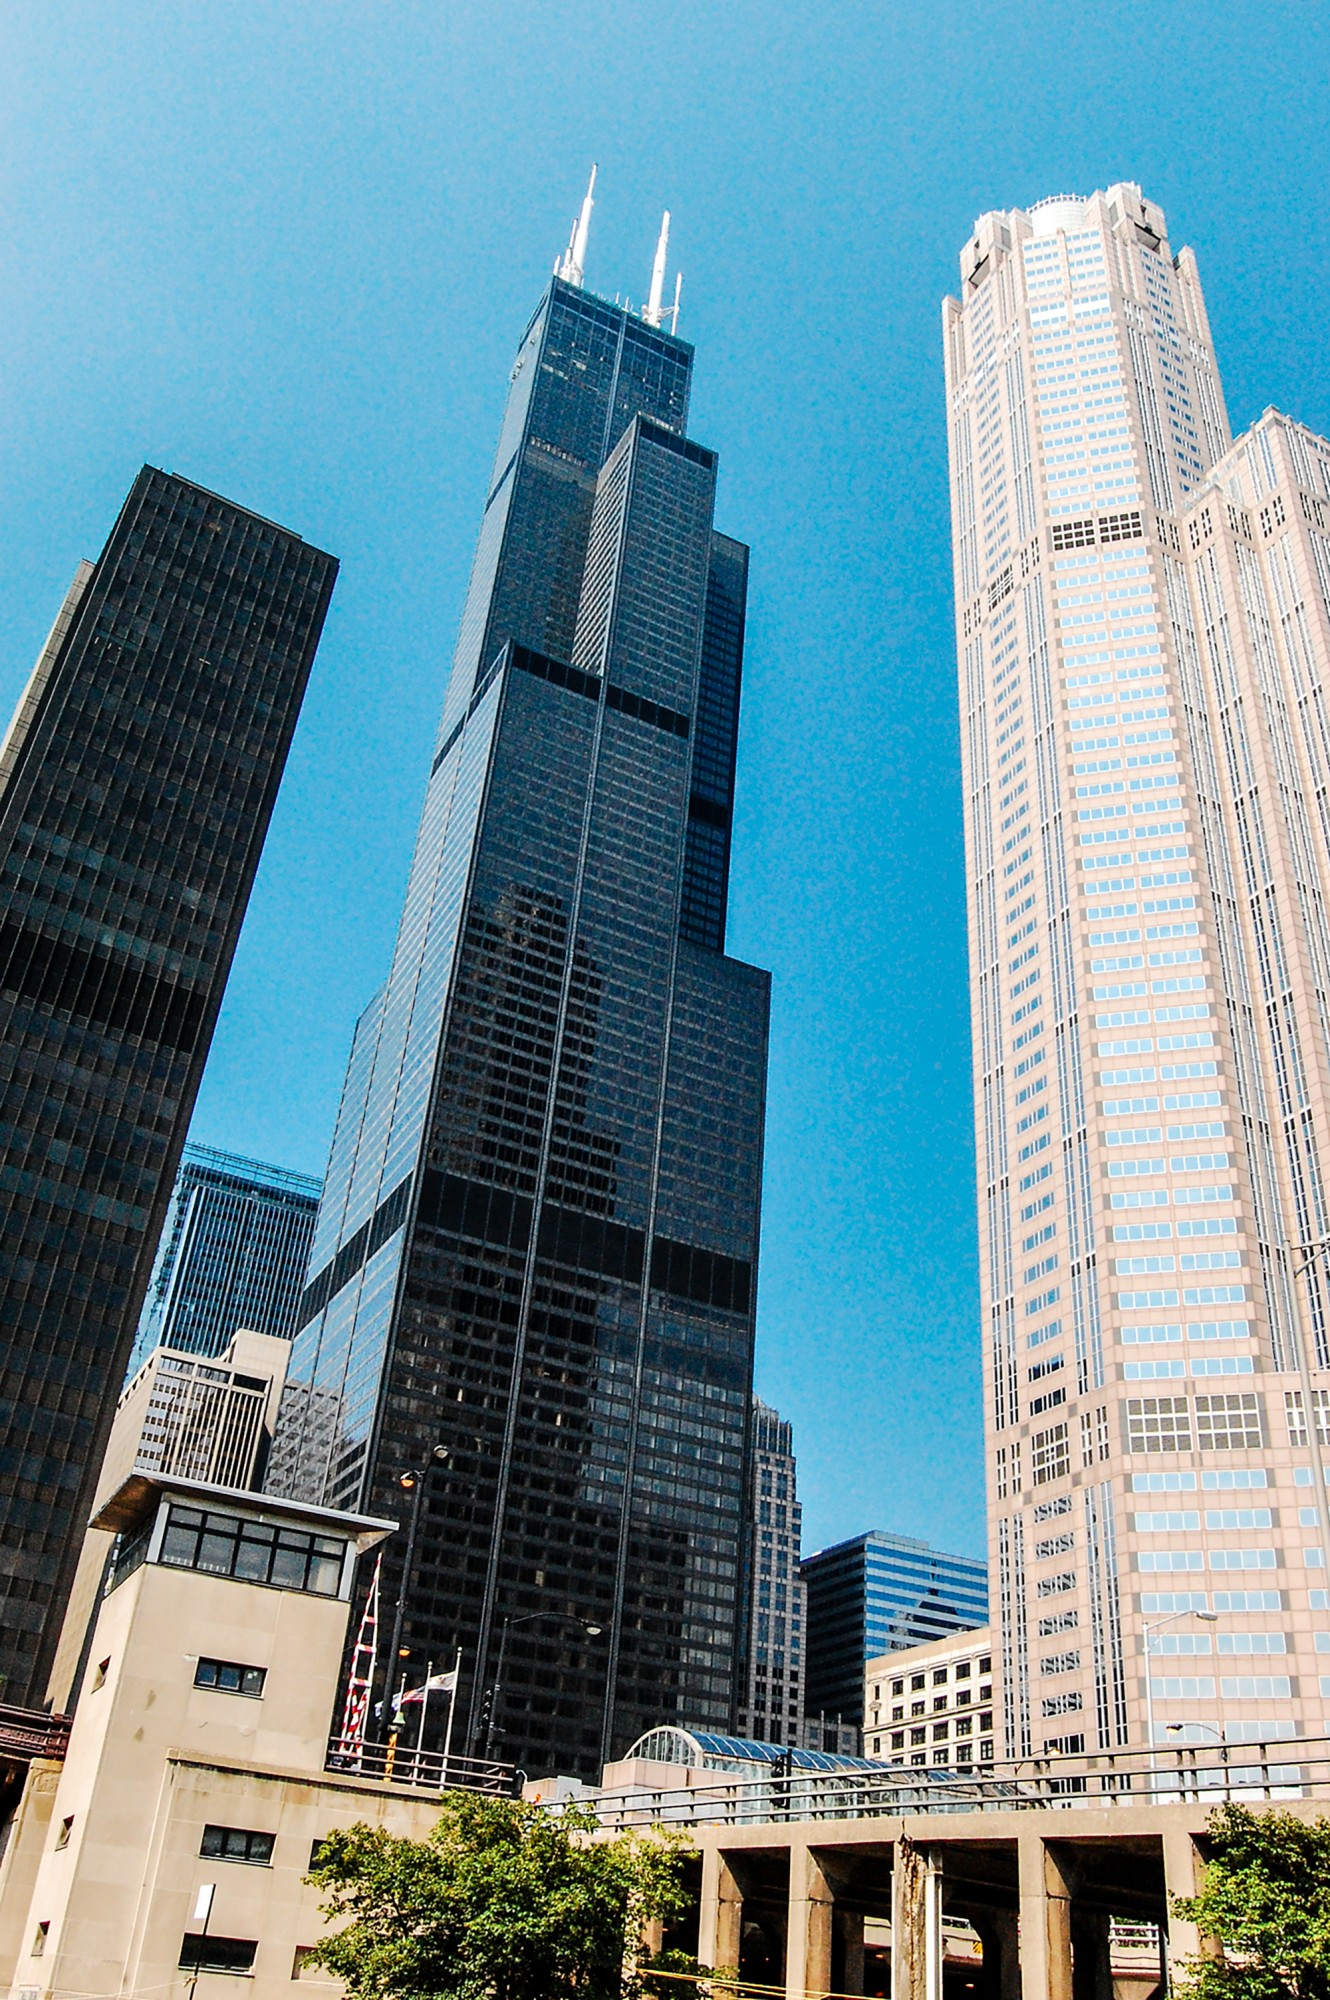 willis tower buildings of chicago chicago architecture center cac